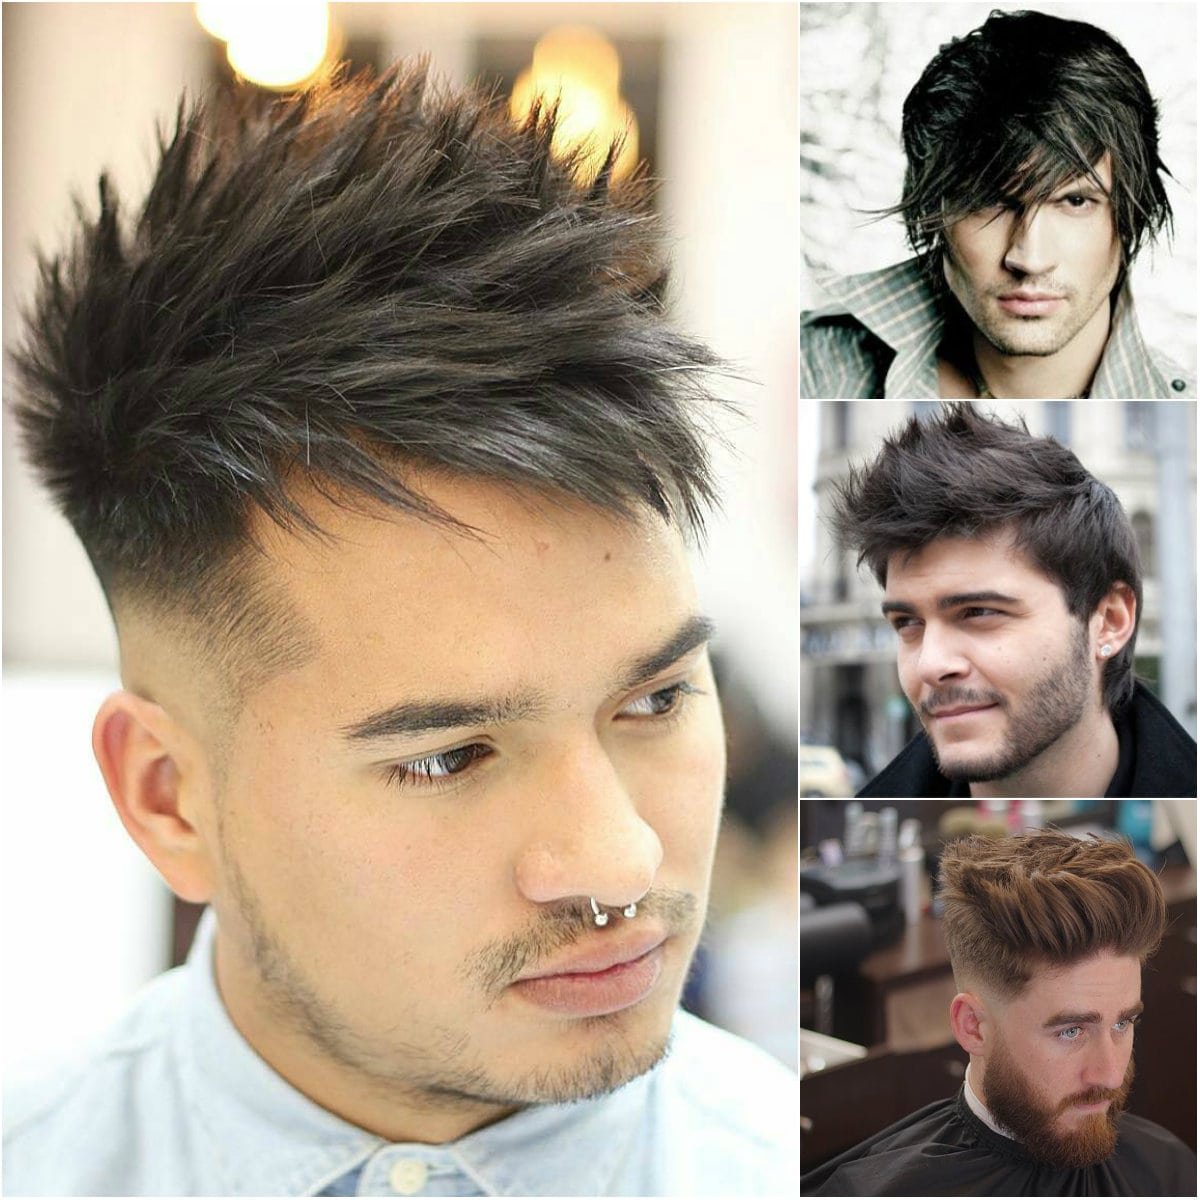 Most attractive Spiky Hairstyles for Men - Top Beauty Magazines